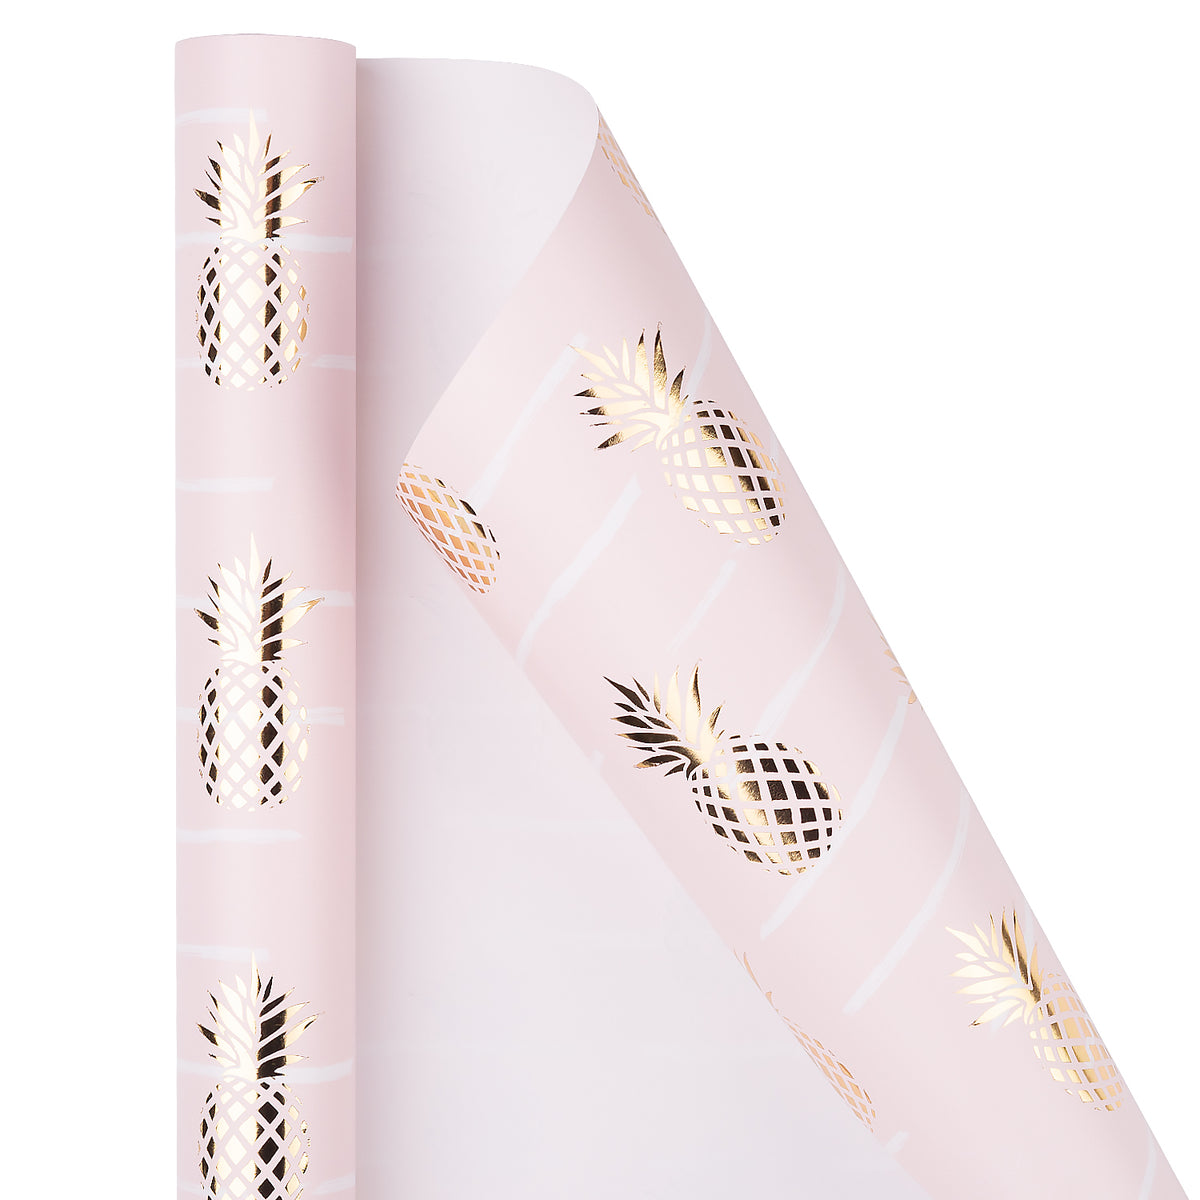 Wrapaholic-Pastel-Pink- Color-with-Foil-Pineapple- Design-Gift-Wrapping-Paper-Roll-2